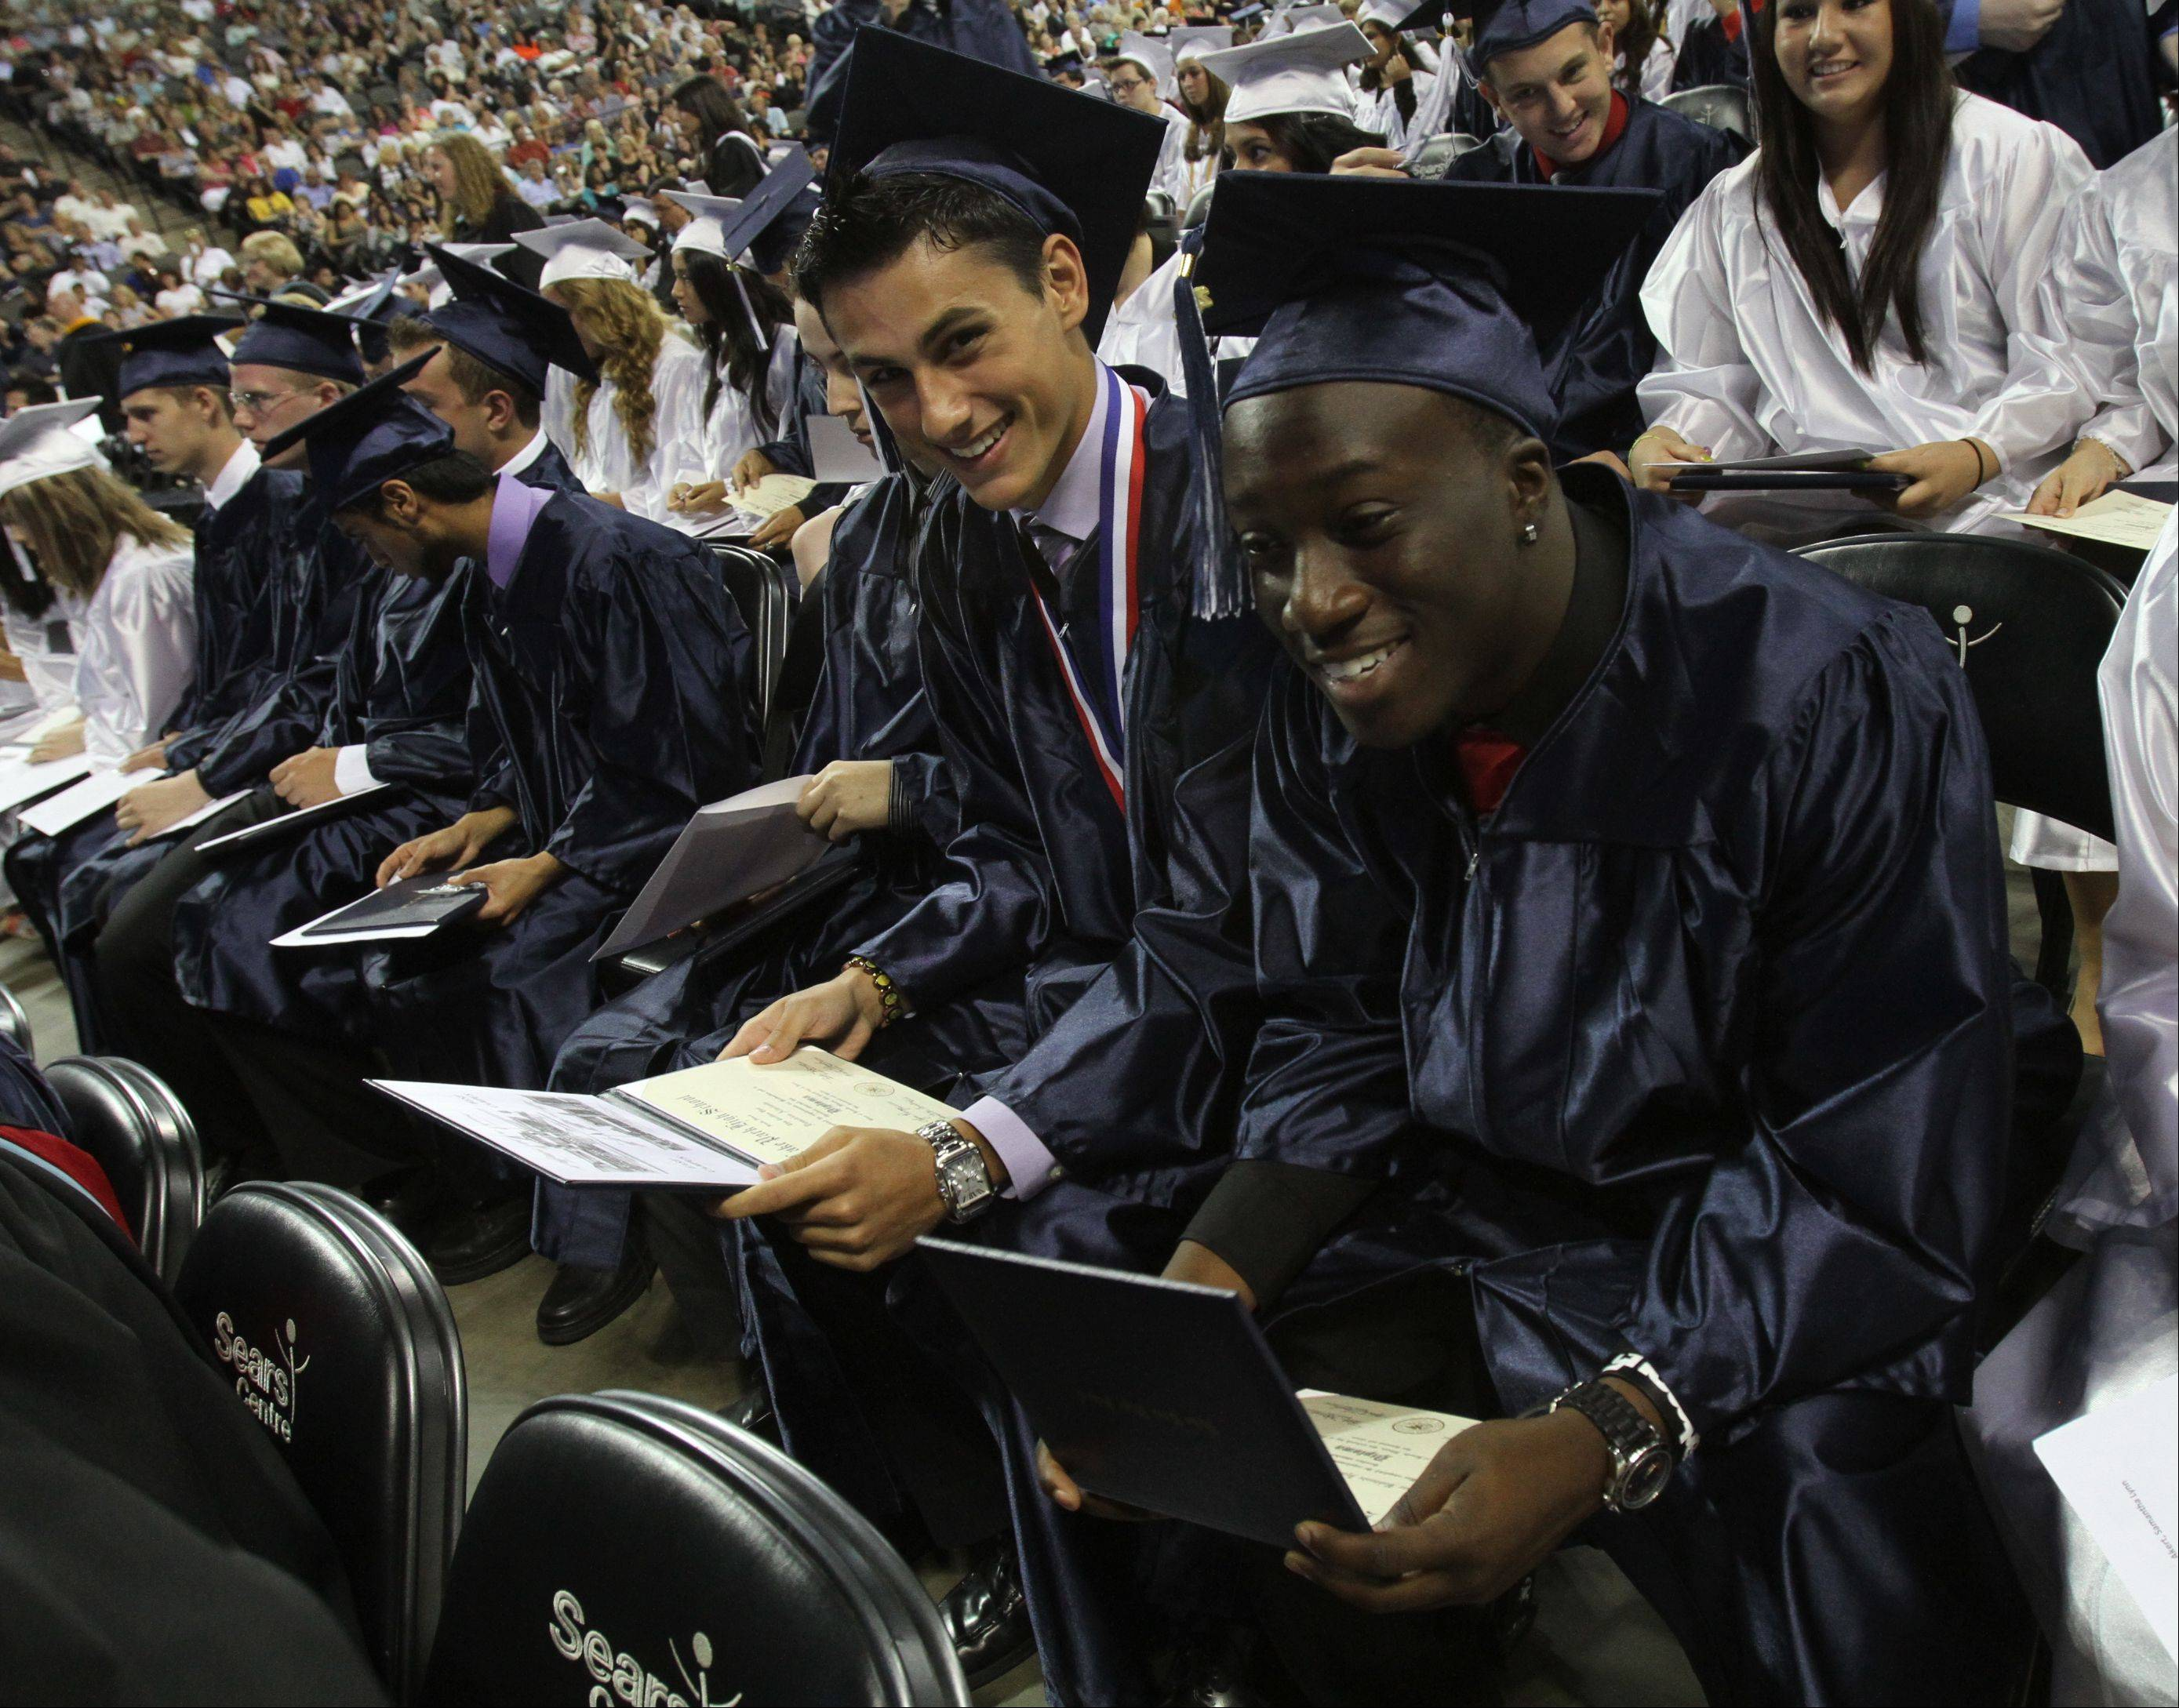 The Lake Park class of 2012 held its graduation ceremony at the Sears Centre in Hoffman Estates on Monday, June 4.